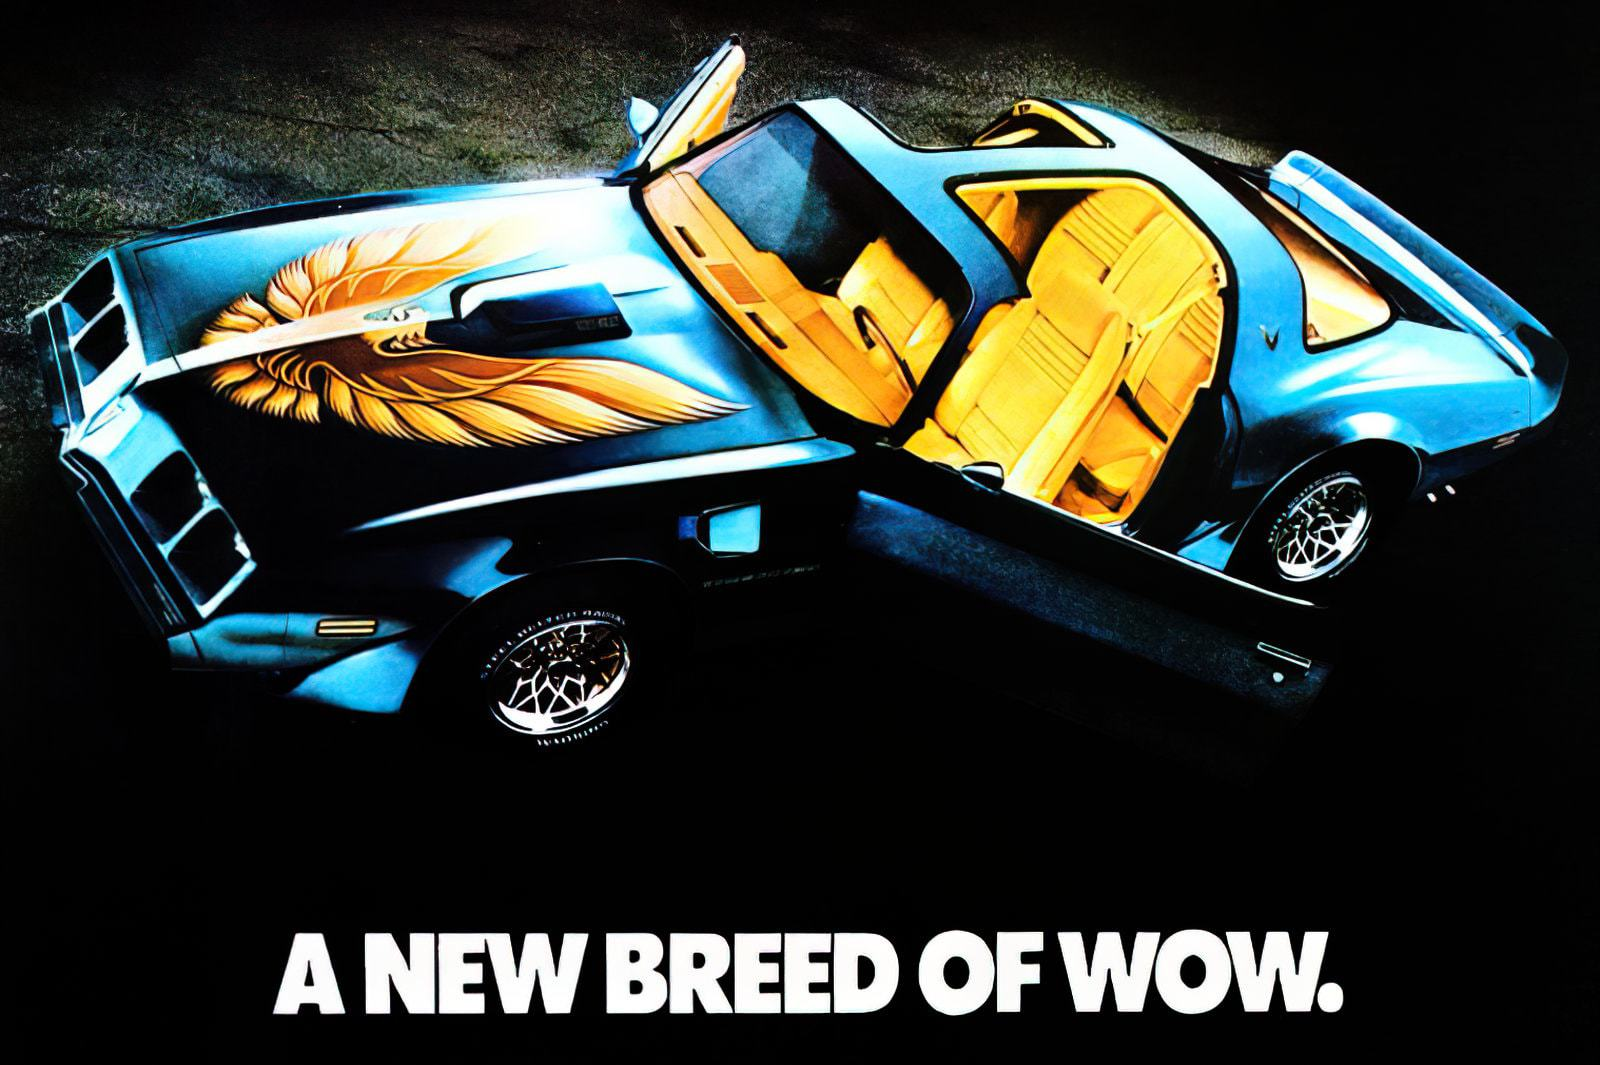 Classic Pontiac Firebirds and Trans Am cars See these flashy retro sports cars